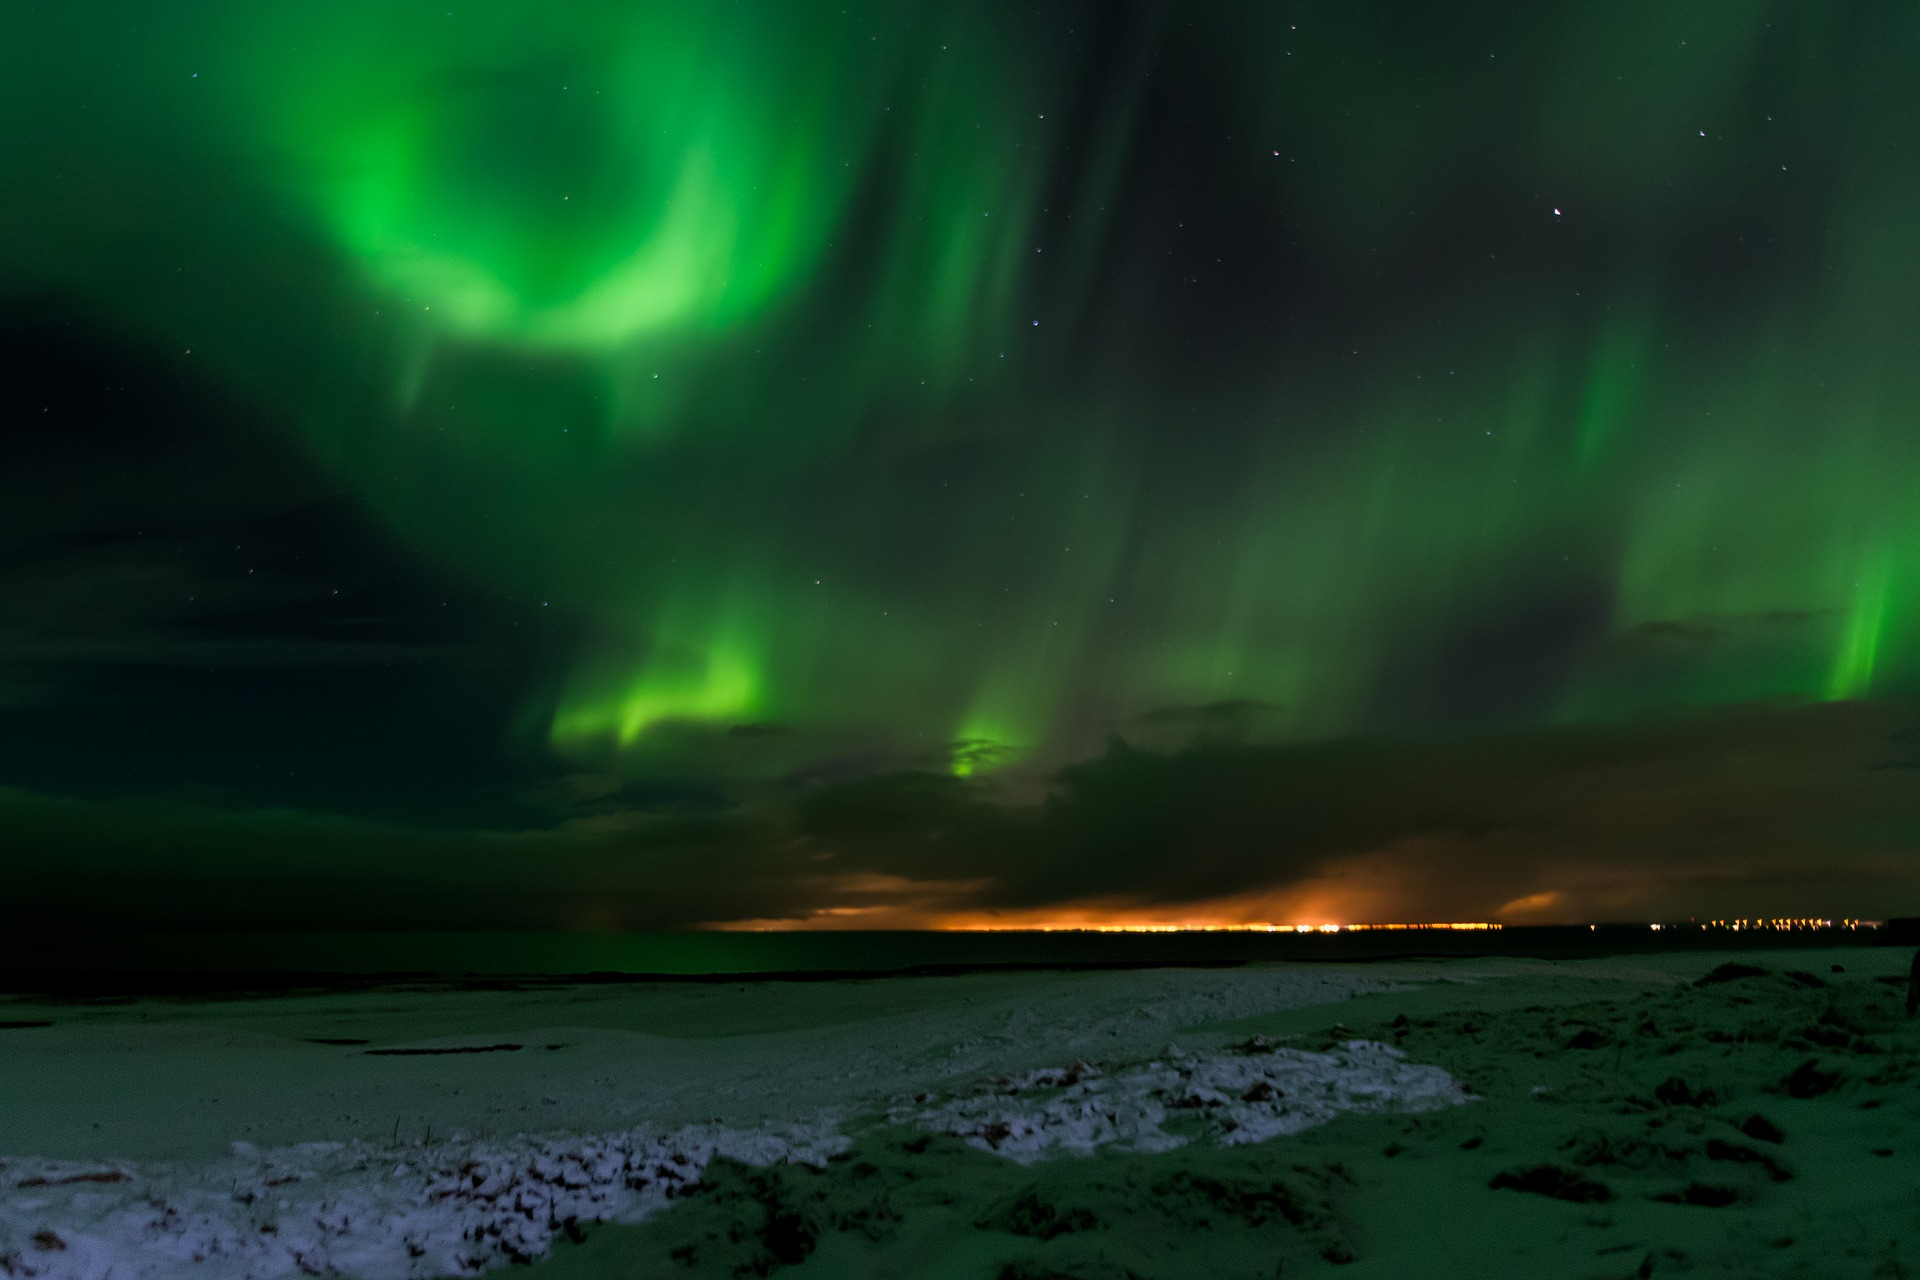 Polarlichter in Island - Image by darrenquigley32 from Pixabay